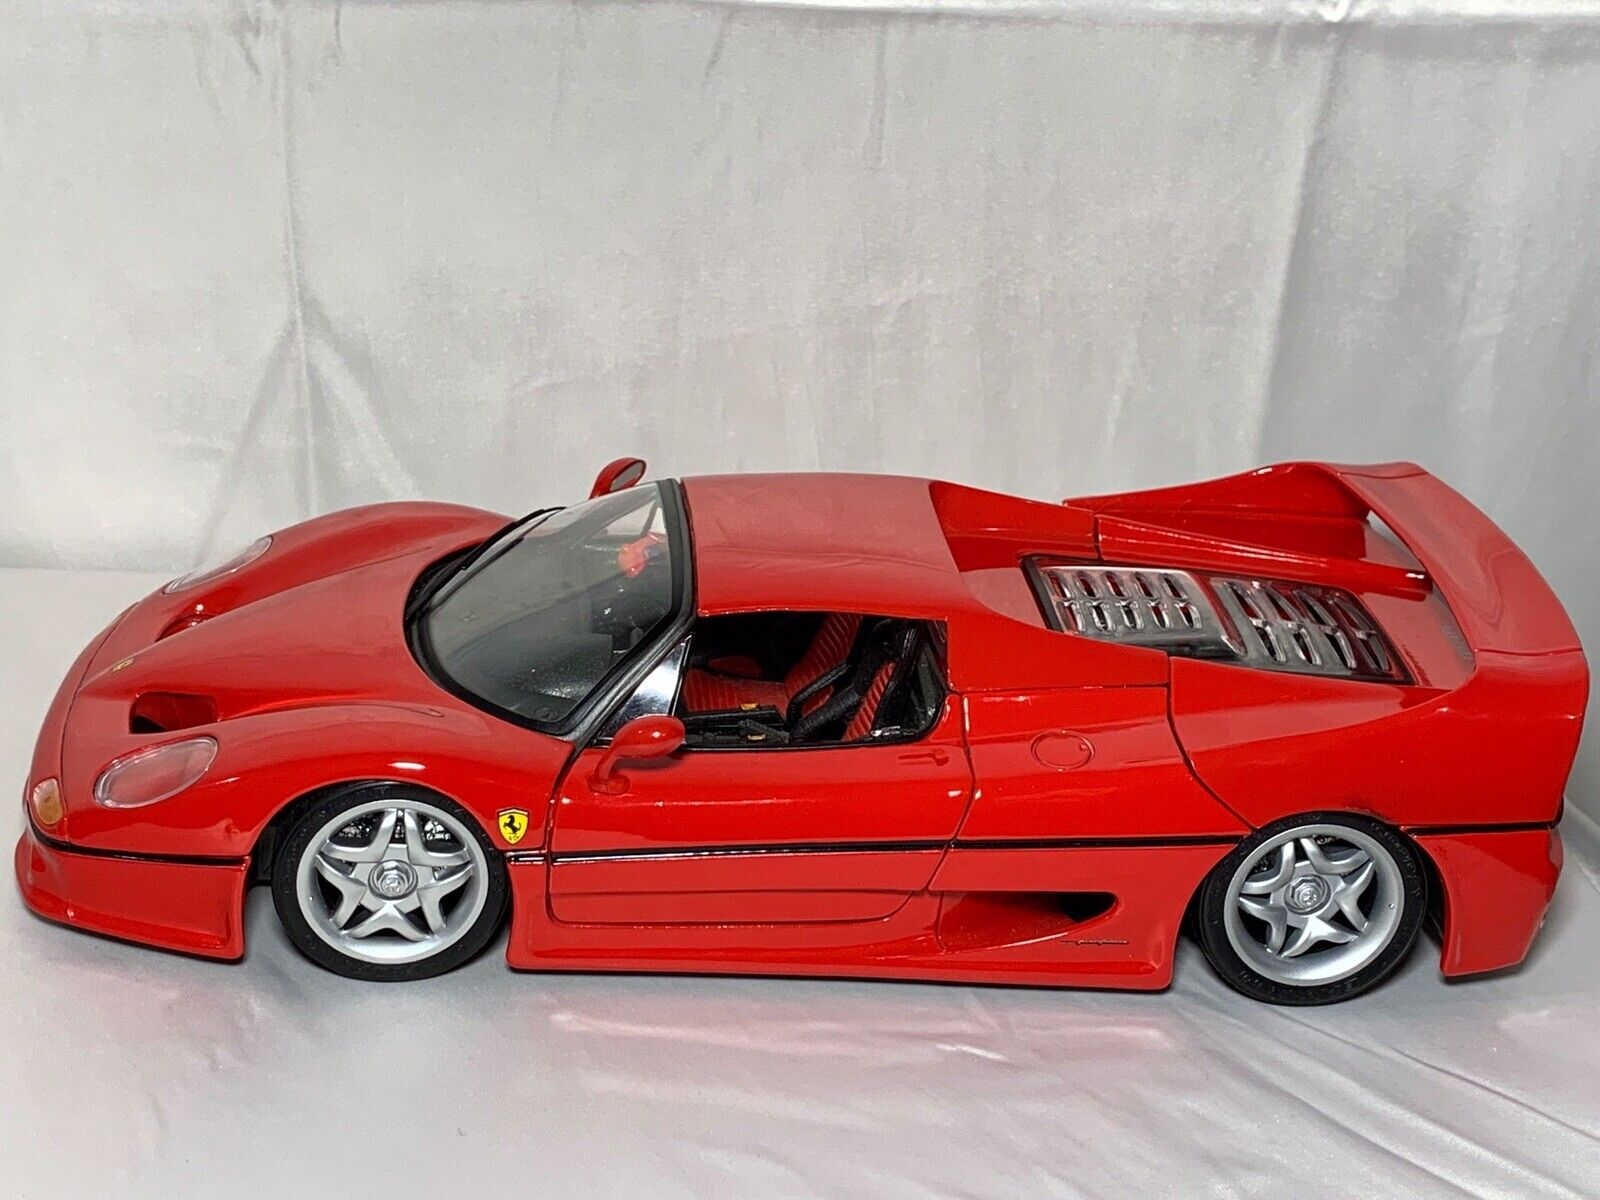 1 18 Scale Die-Cast Metal Red Ferrari F50 (1995) HardTop Model by Maitso